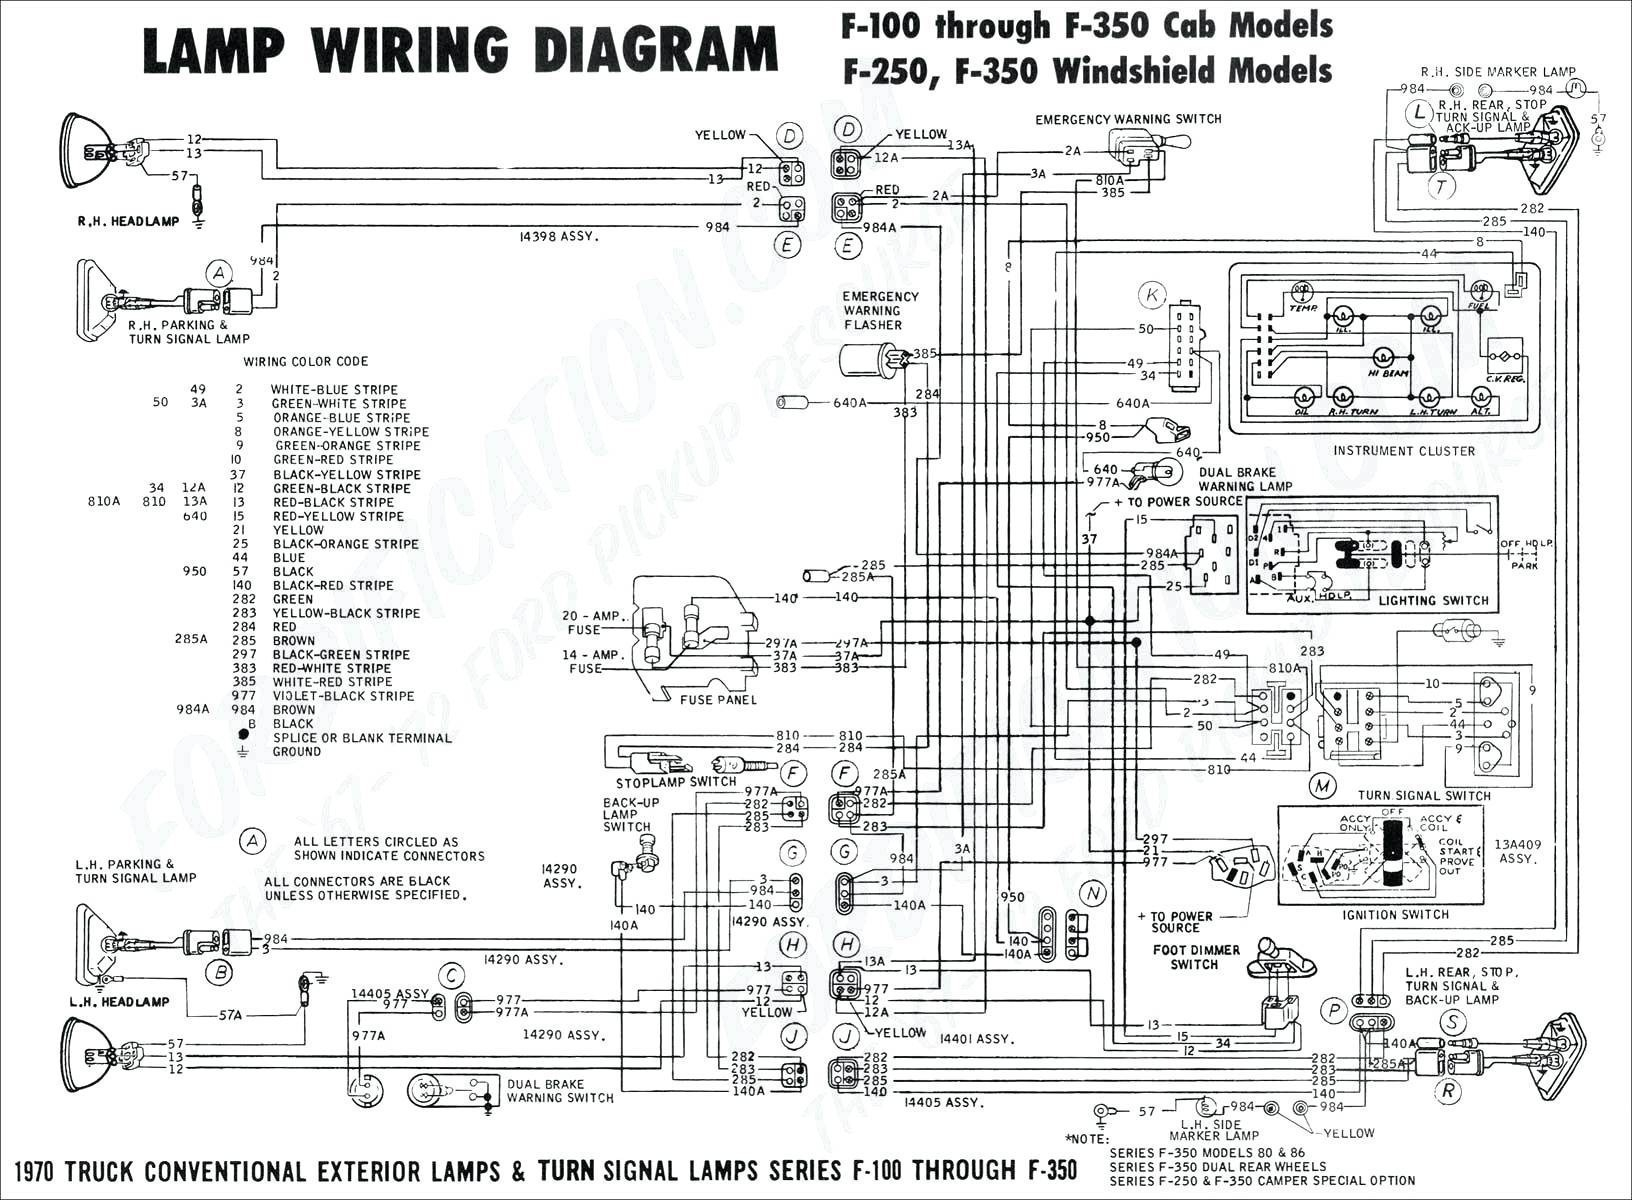 2004 dodge ram tail light wiring diagram Collection-2006 Dodge Ram 1500 Parking Light Wiring Diagram Valid 99 Dodge Ram Tail Light Wiring Diagram 9-i